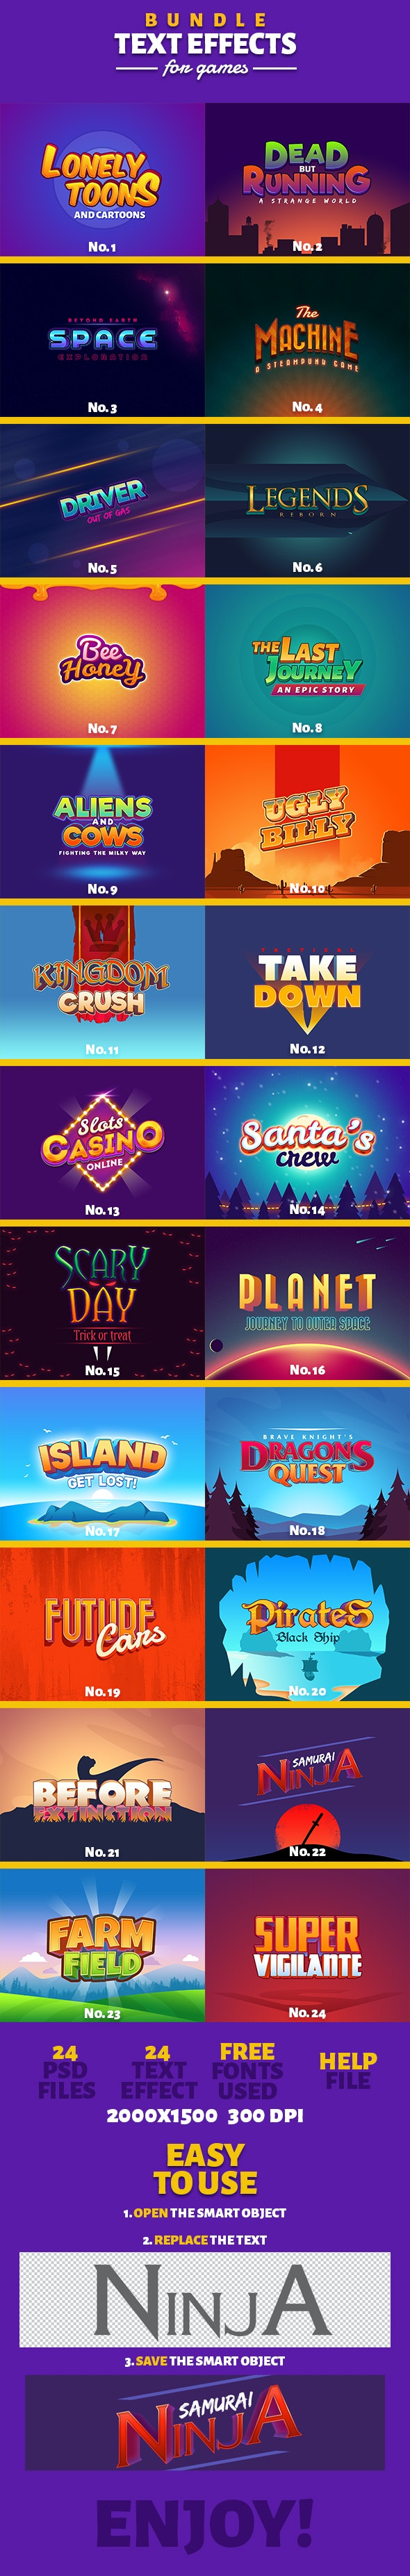 Text Effects For Games Bundle 1-3 - Photoshop Add-ons